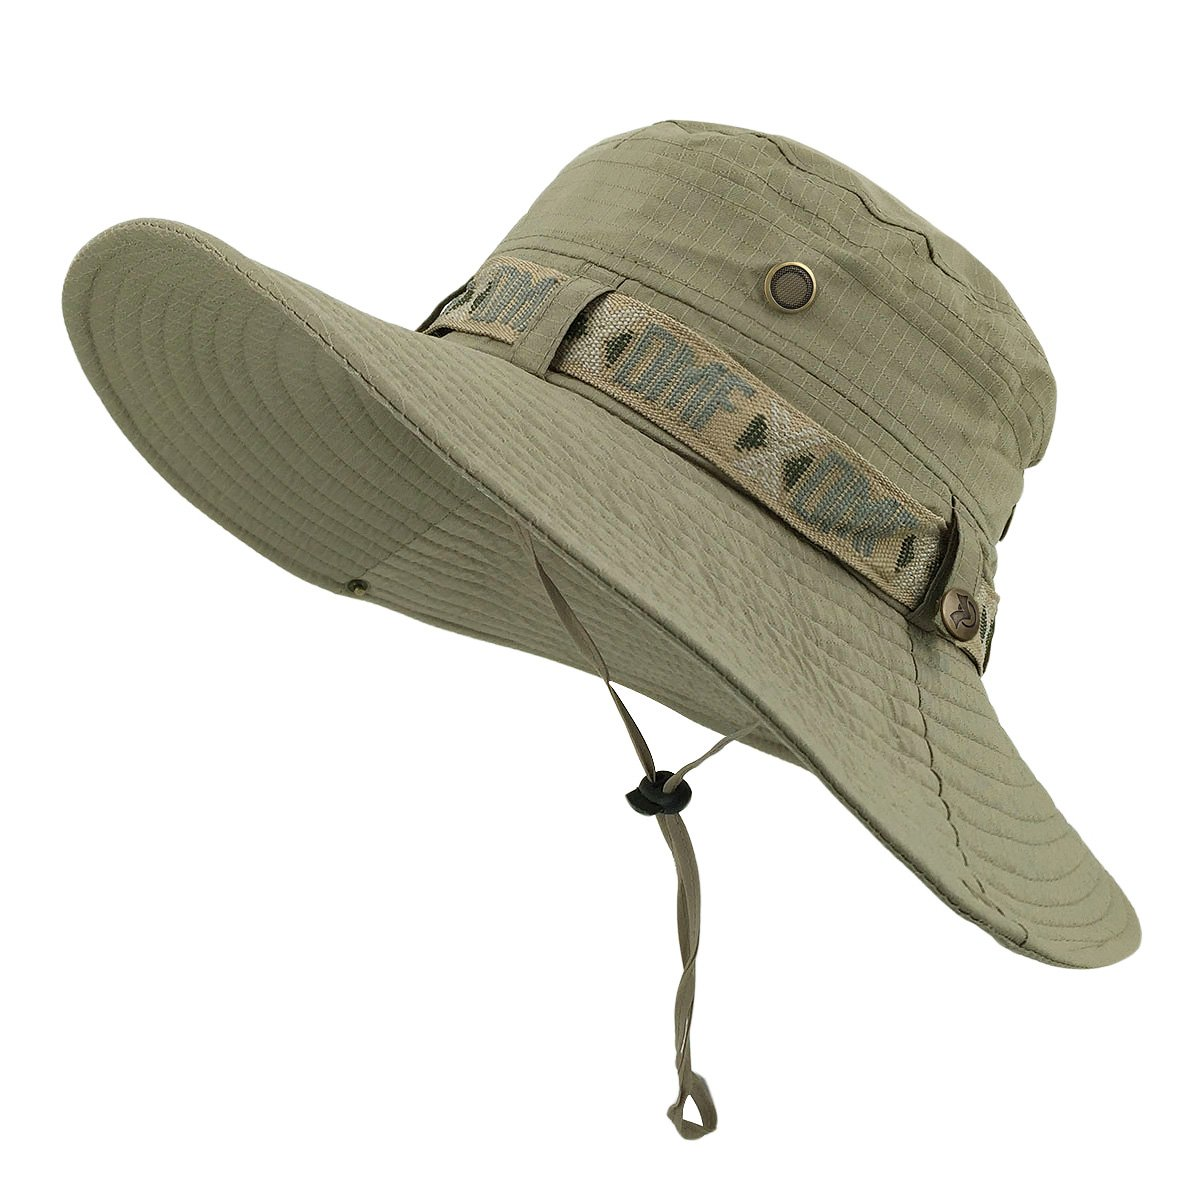 Amazon.com  LETHMIK Fishing Sun Boonie Hat Waterproof Summer UV Protection  Safari Cap Outdoor Hunting Hat  Sports   Outdoors 2bc8fe77739